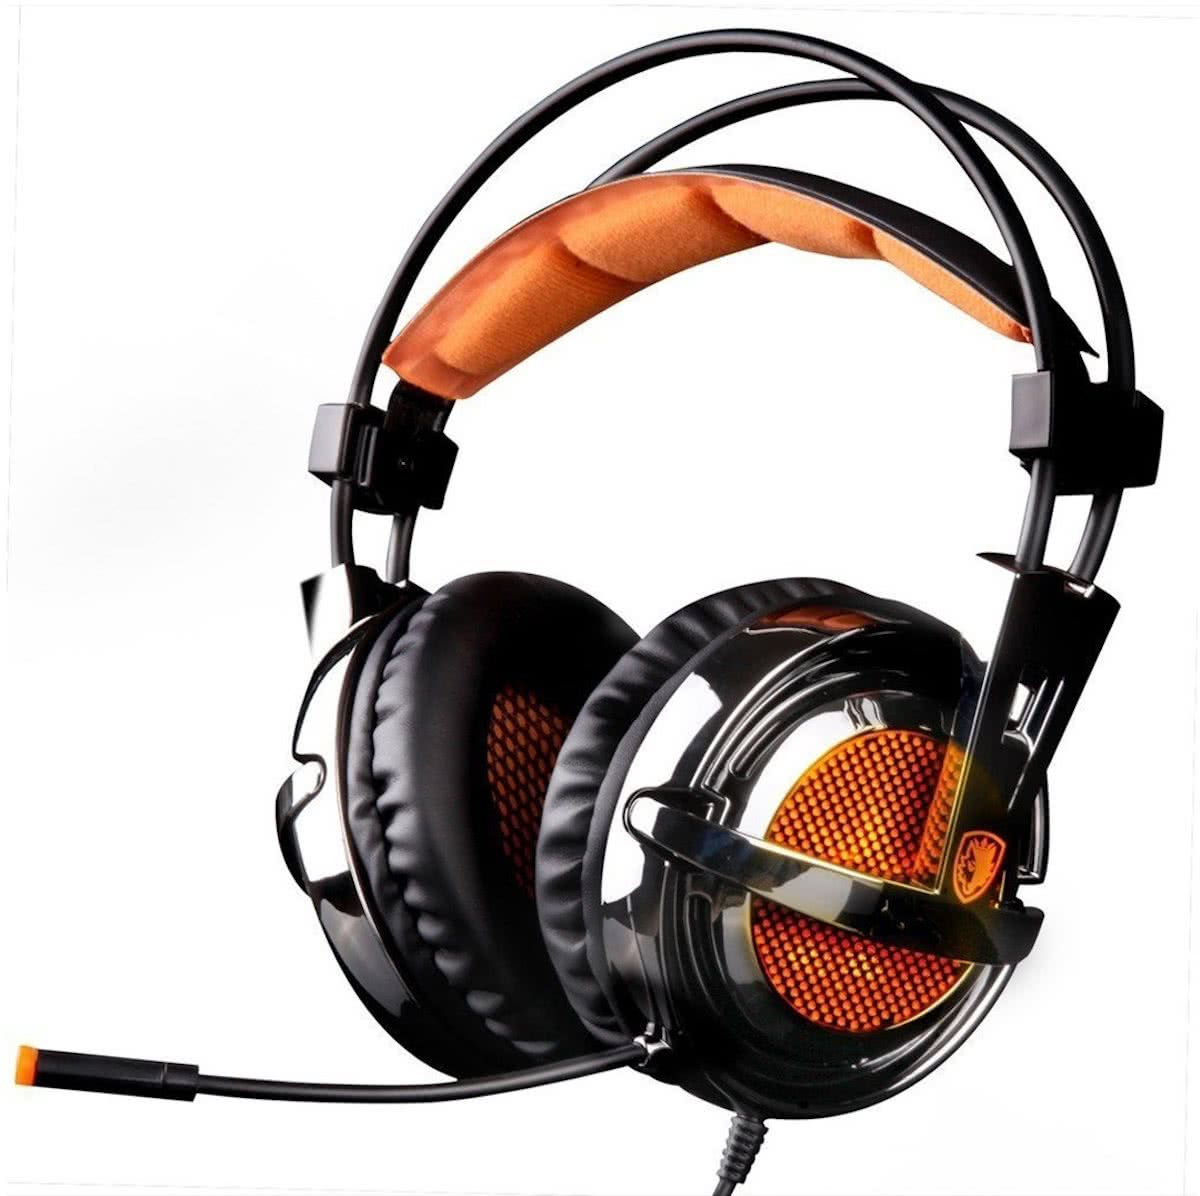 SADES Magic Crystal USB Gaming Headset 7.1 Channel Wired hoofdtelefoon met Wire Control + Mic + Breathing licht voor PC, Laptop (Black+Orange)